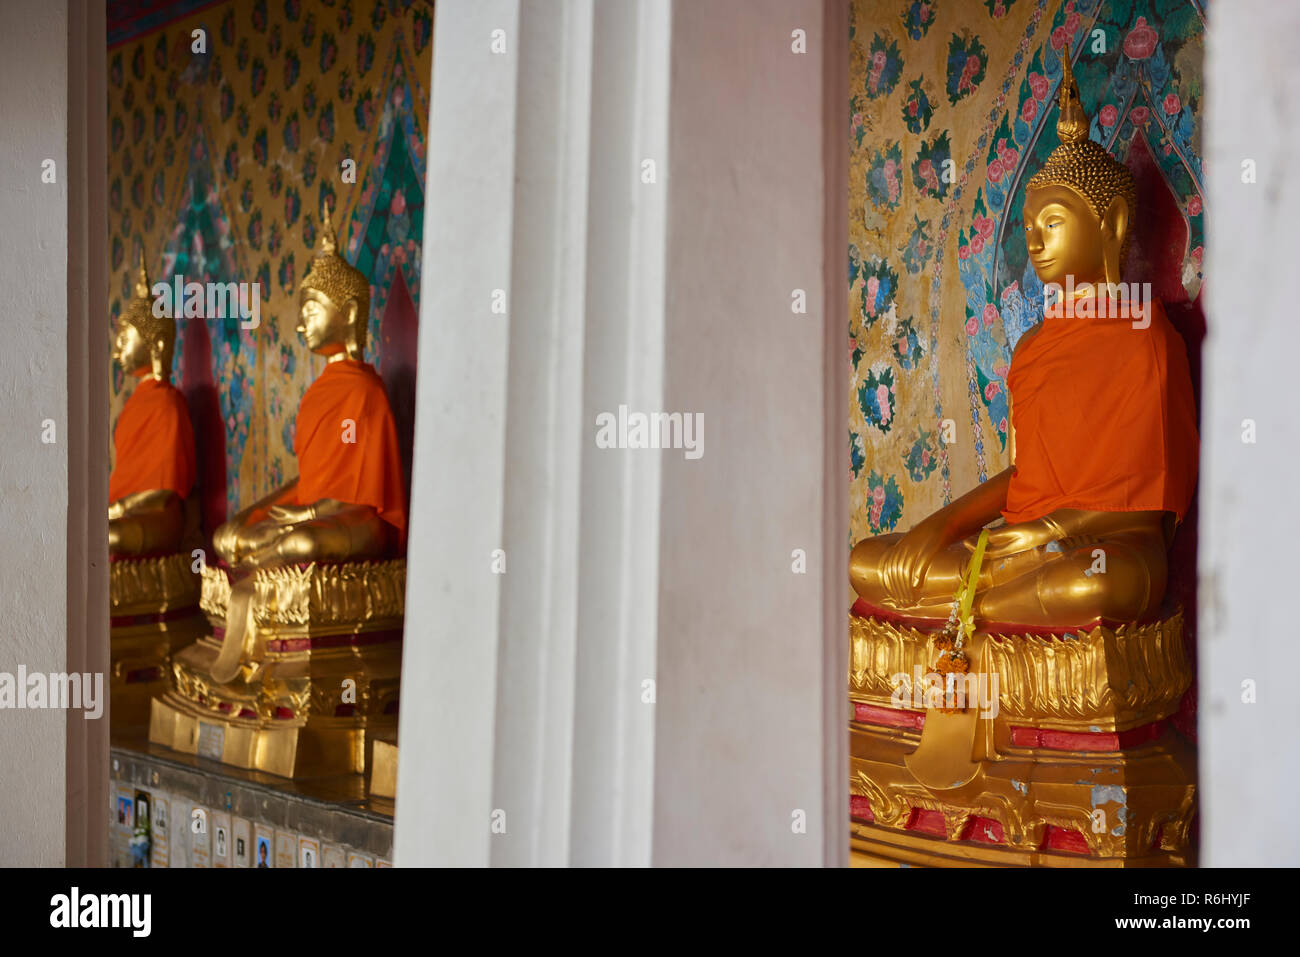 Three of the several golden Buddha statues lined up in a diminishing perspective under the cover of one of the Ordination Hall in Bangkok, Thailand. Stock Photo